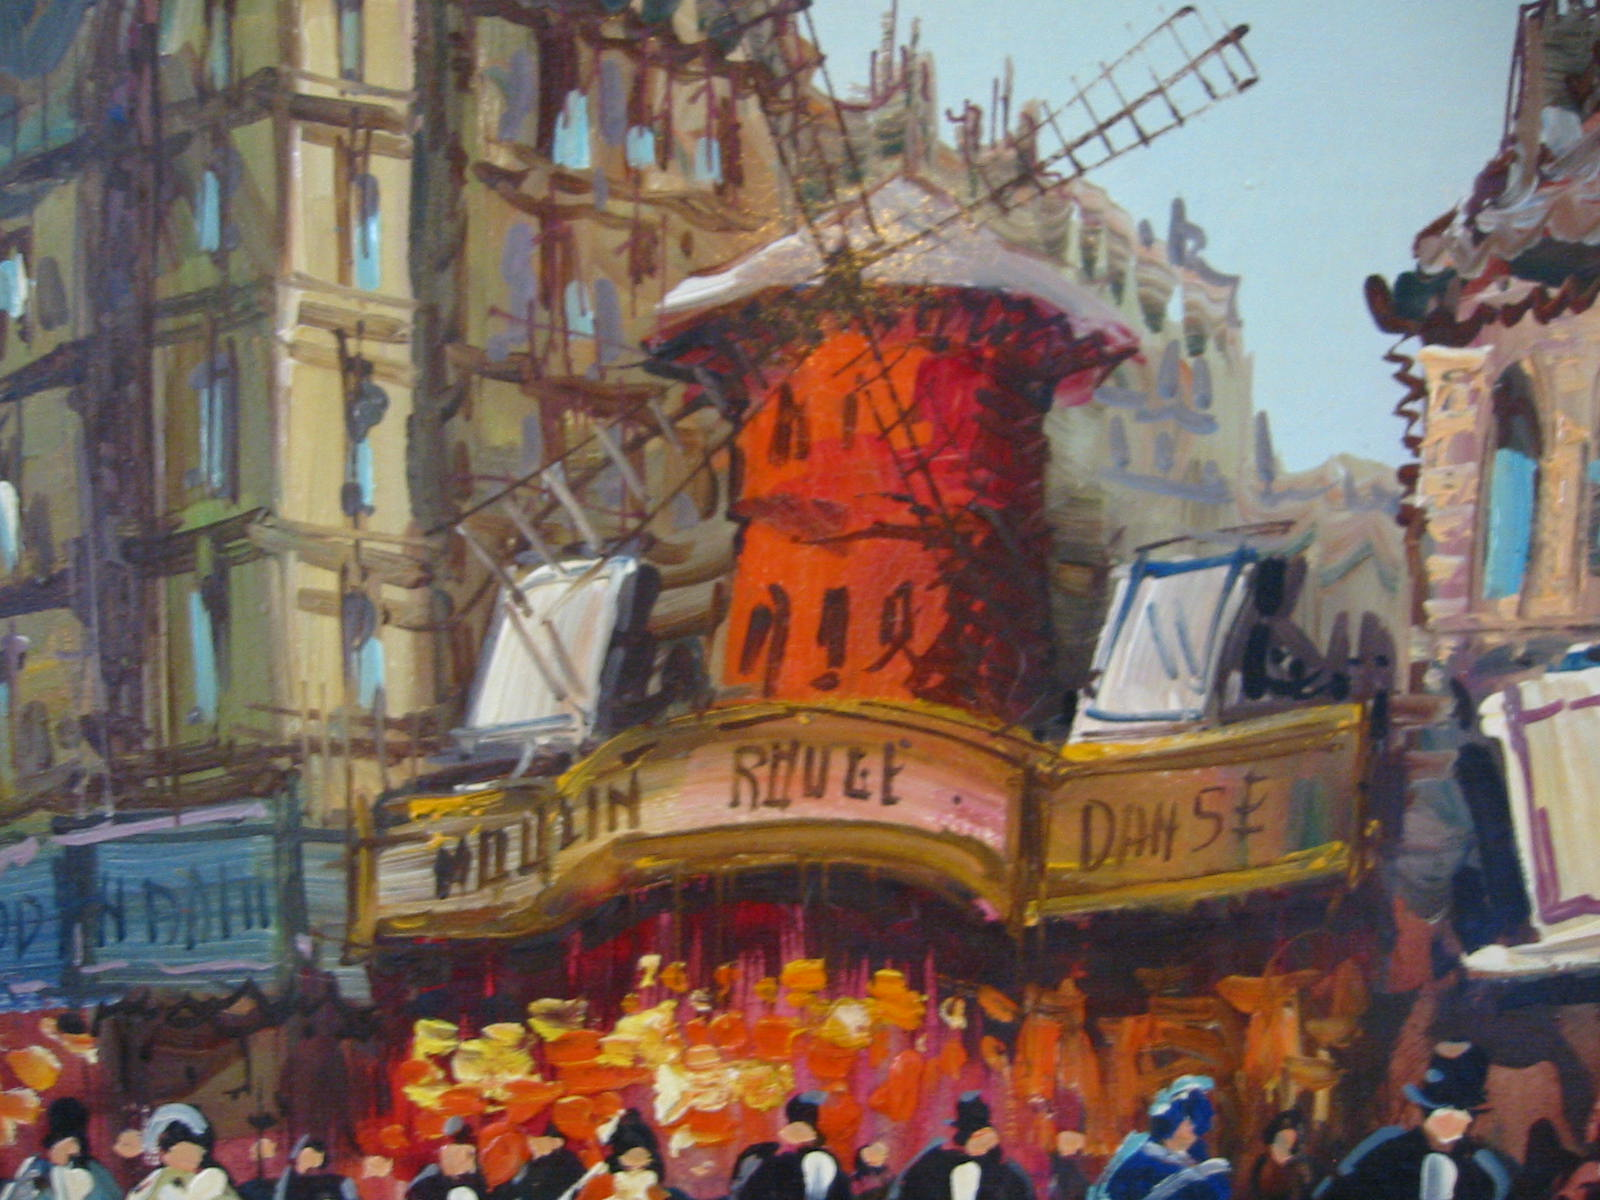 Perugino Moulin Rouge Paris Cityscape Oil On Canvas For